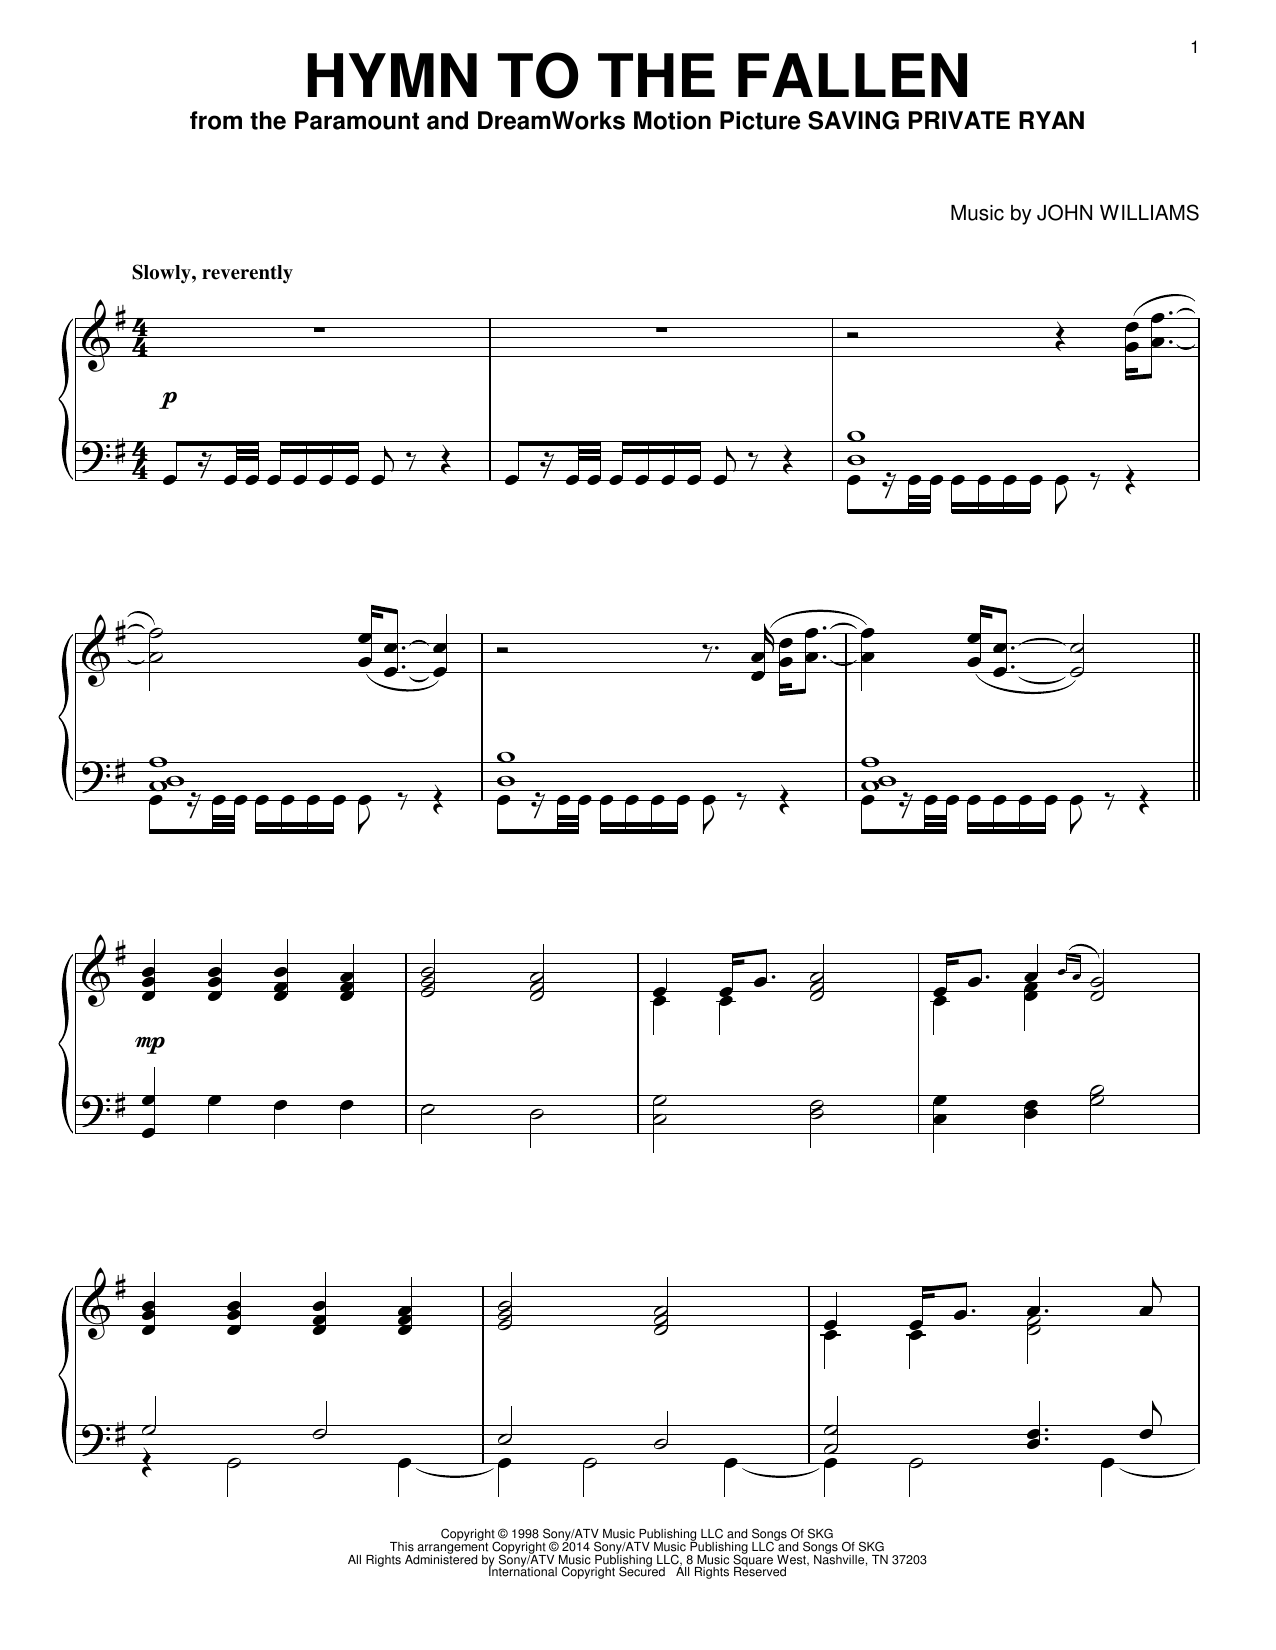 John Williams Hymn To The Fallen sheet music notes and chords